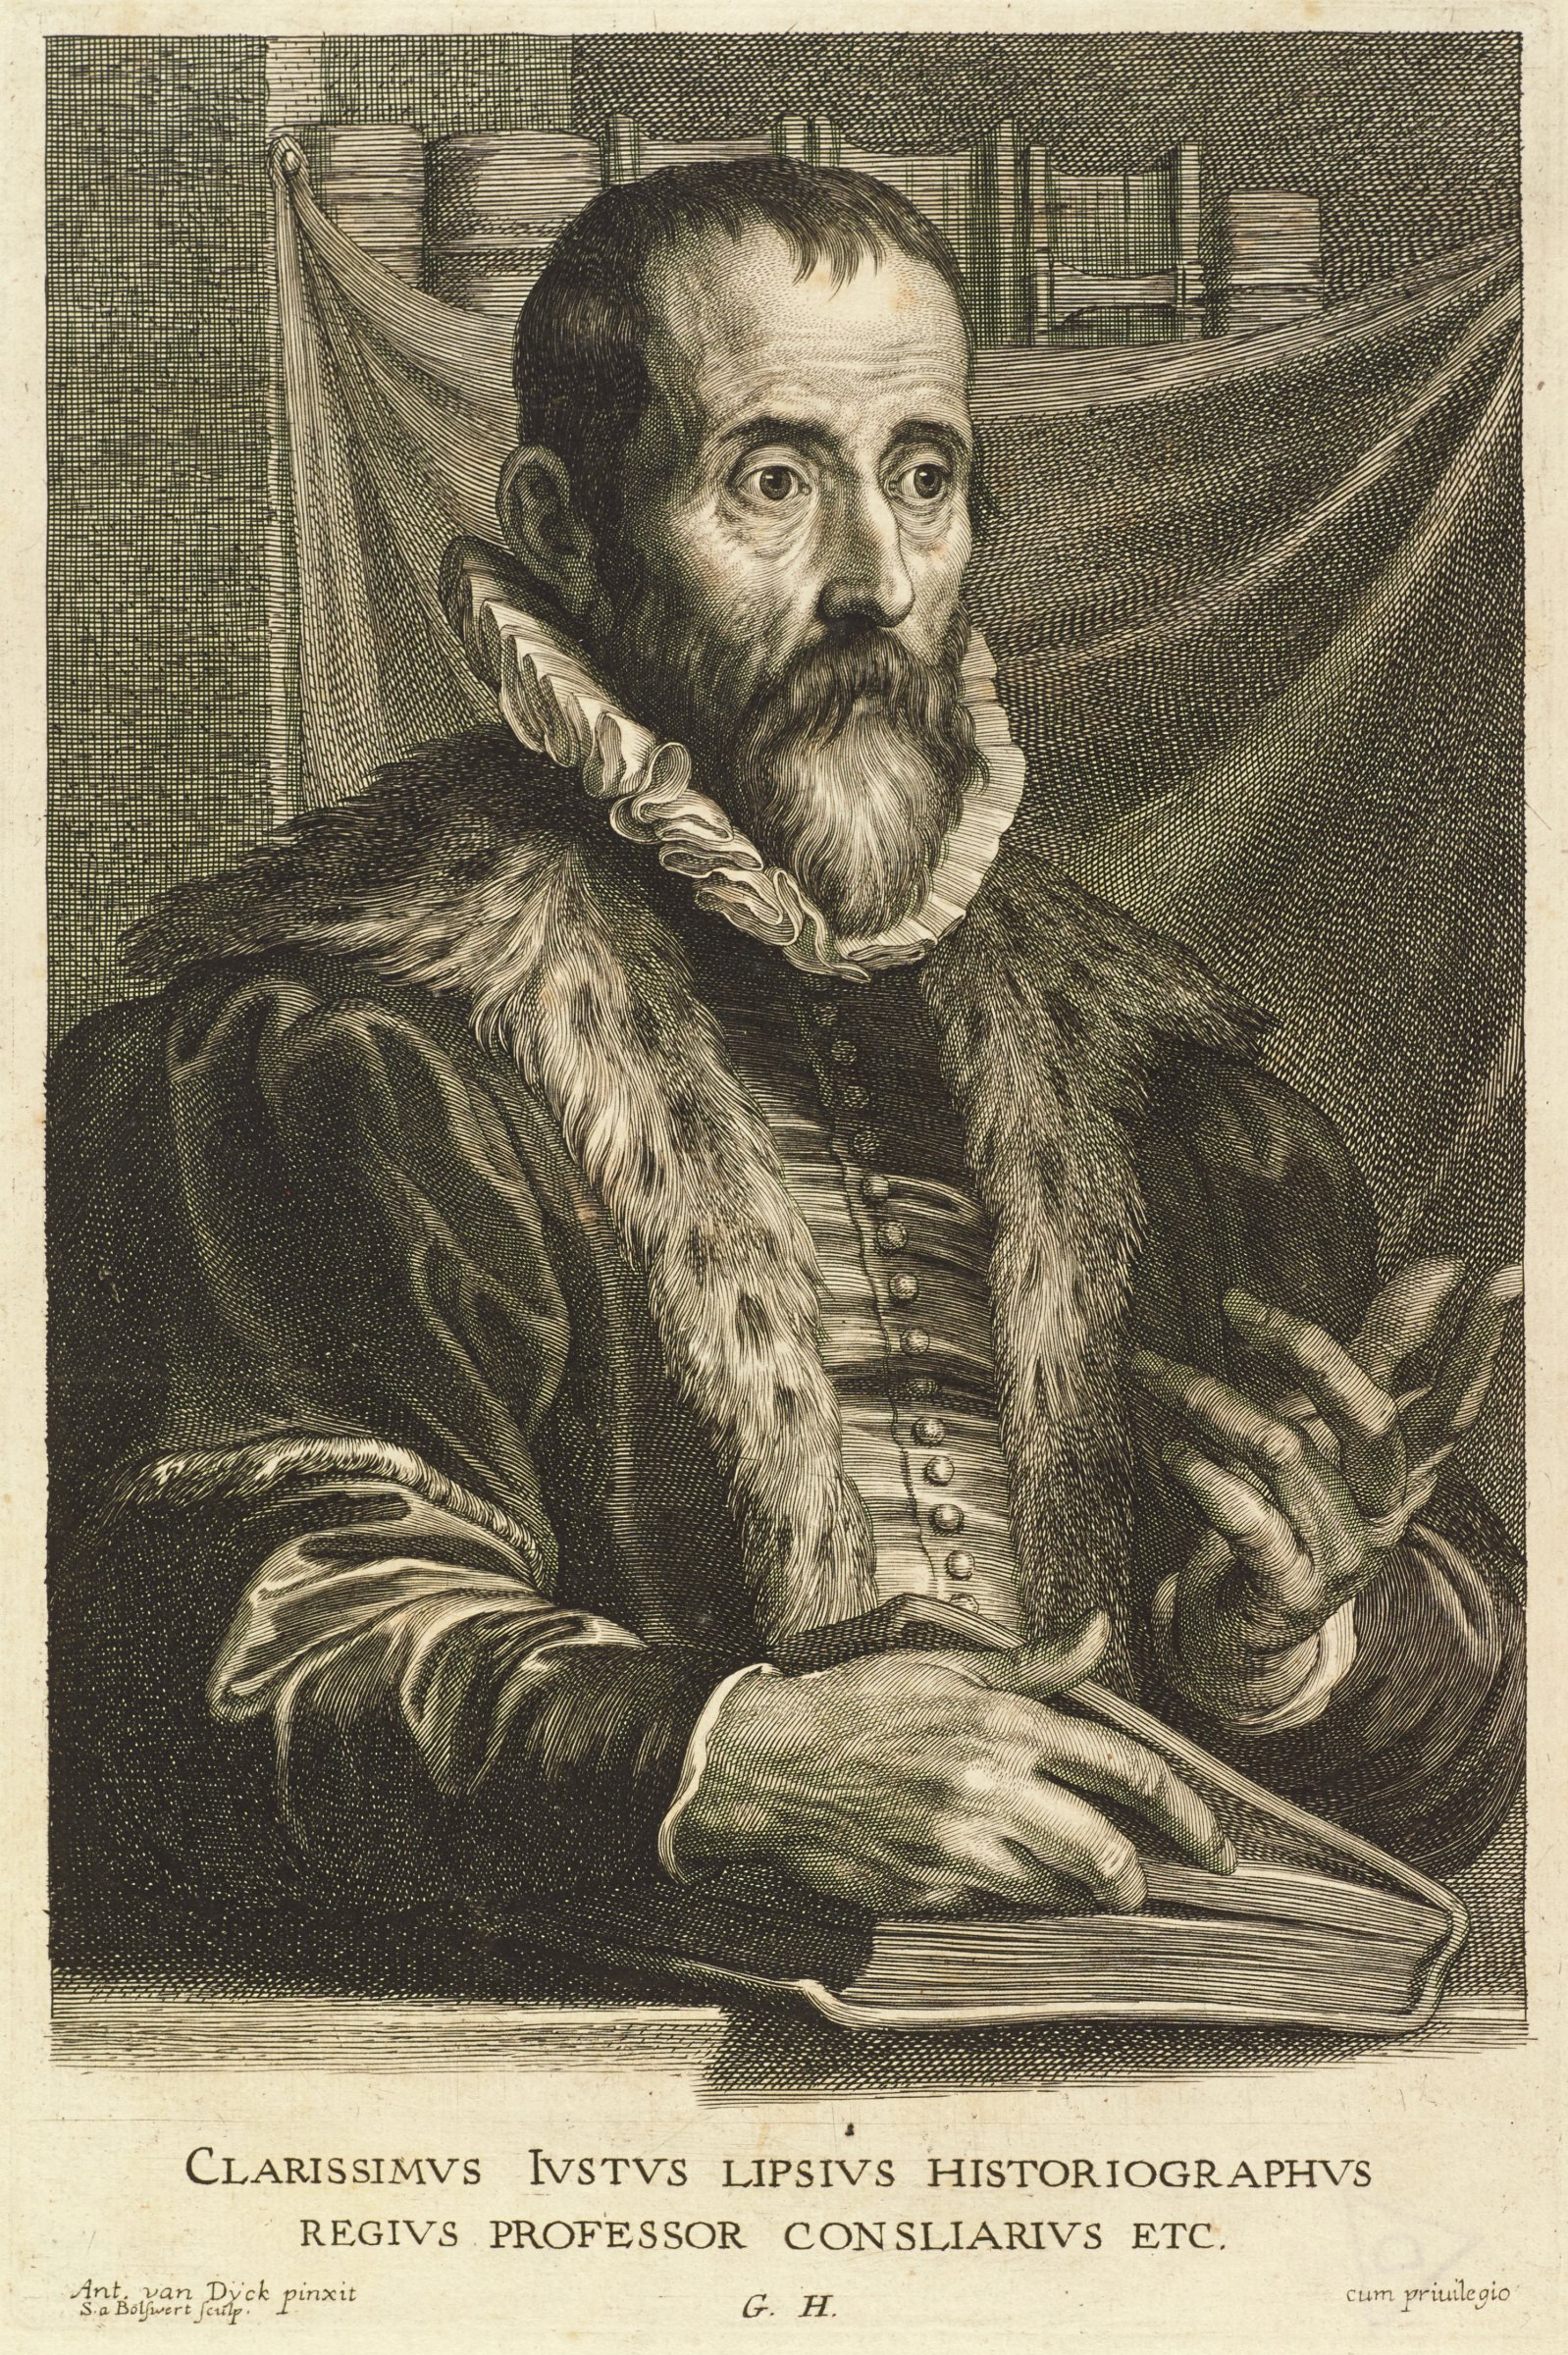 Justus Lipsius was a philosopher. He is seen here in portrait from the waist up, slightly angled to the right, looking away from the viewer. He wears a ruff and a fur lined jacket. His right hand rests inside the cover of a book as he gestures with his left hand. This is from the Gillis Hendricx edition of the Iconography (Icones Principum Virorum Doctorum, Pictorum Chalcographorum Statuorum nec non Amatorum Pictoriae Artis Numero Centum), made between 1632-44.